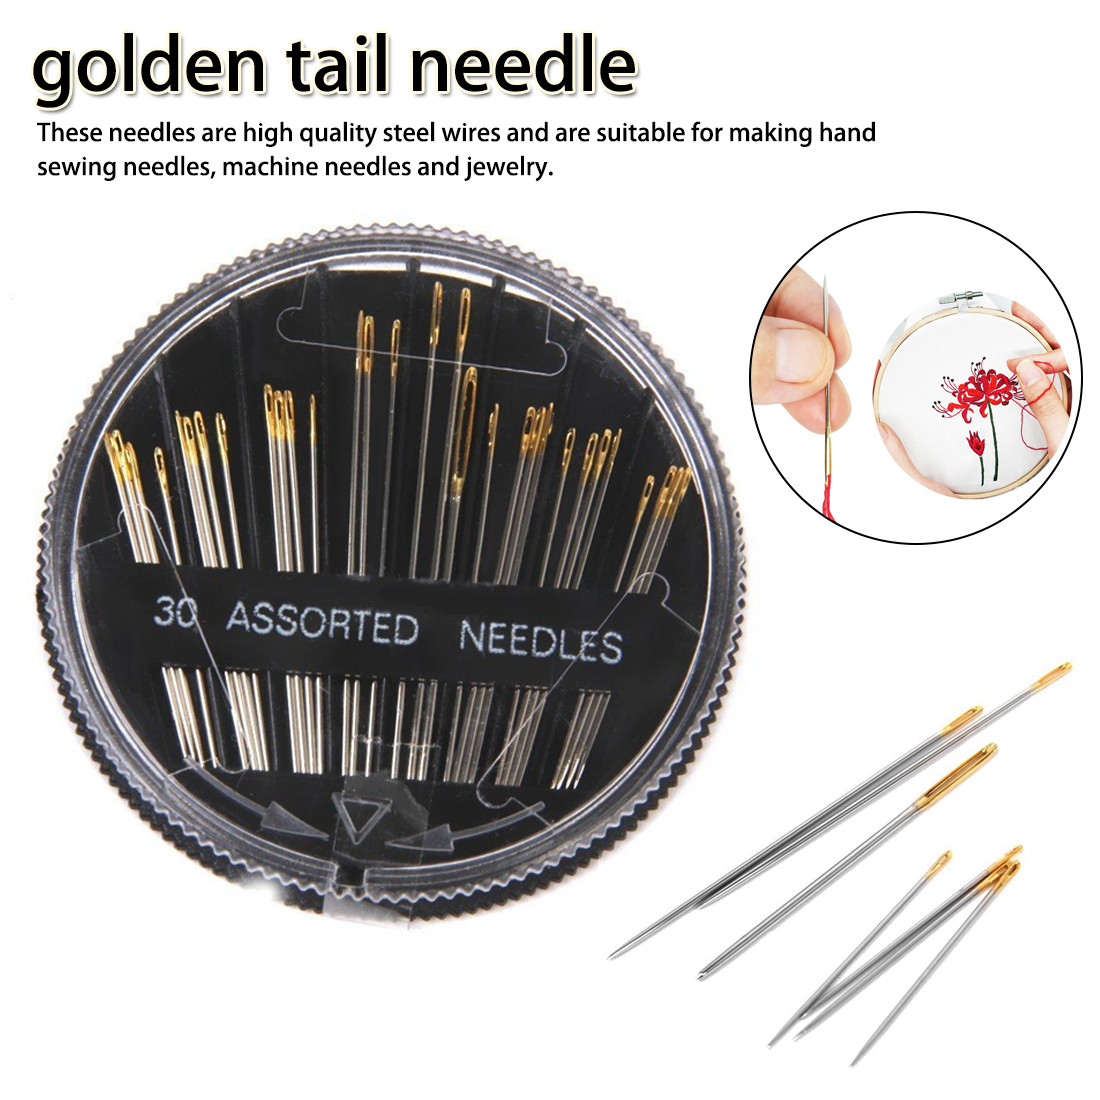 30PCS Case Assorted Hand Sewing Needles Embroidery Mending Craft Quilt Sew New